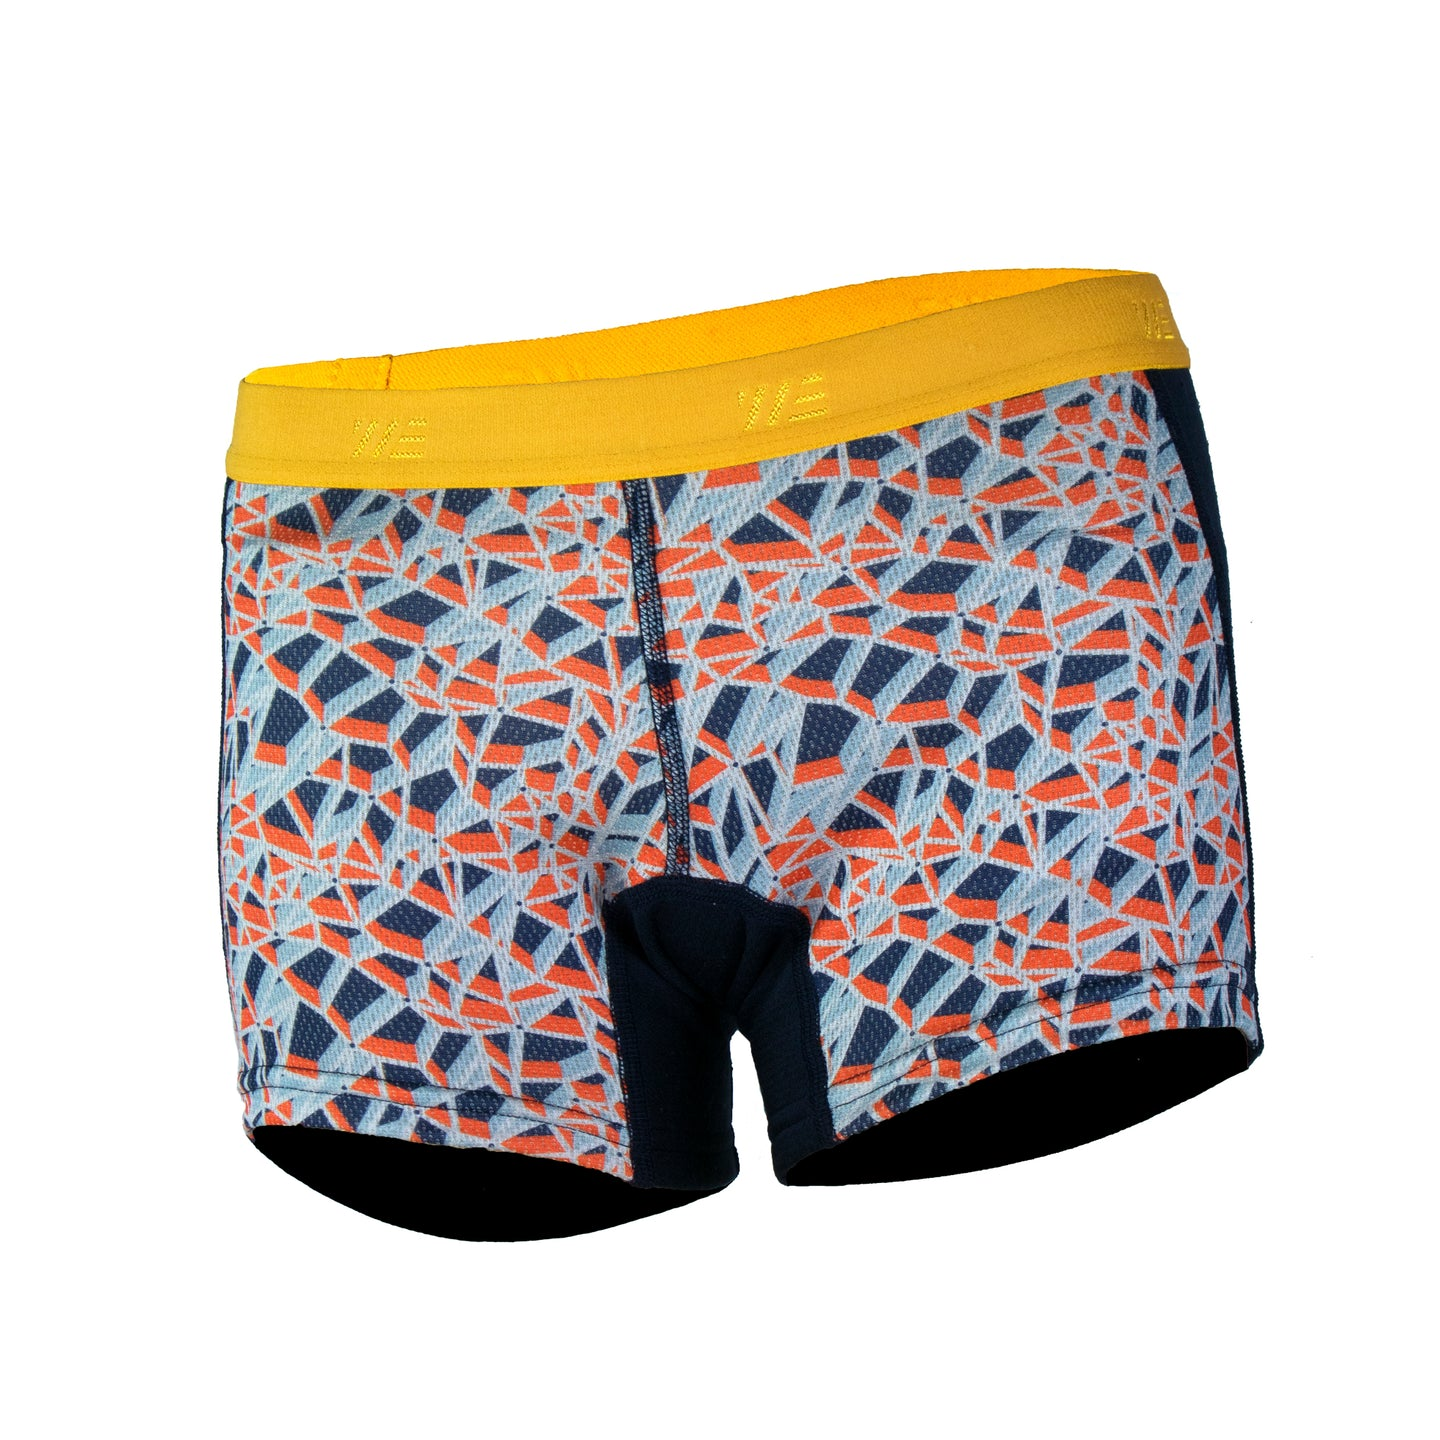 UNDIES WOOL MIX BOXER W